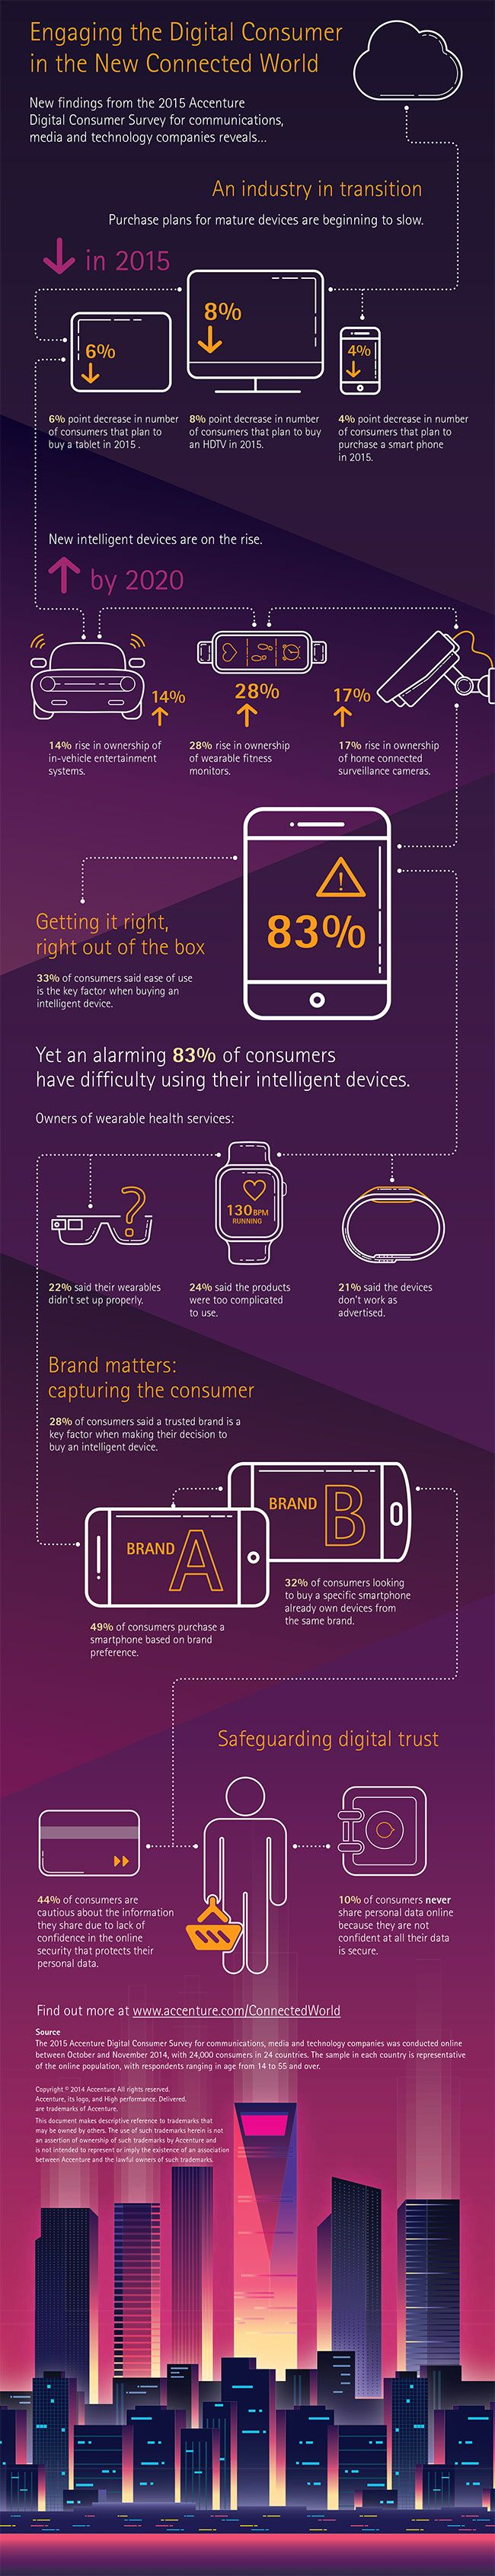 Digital consumers rely on mobile devices but most find them hard to use. Results from Accenture 2014 survey